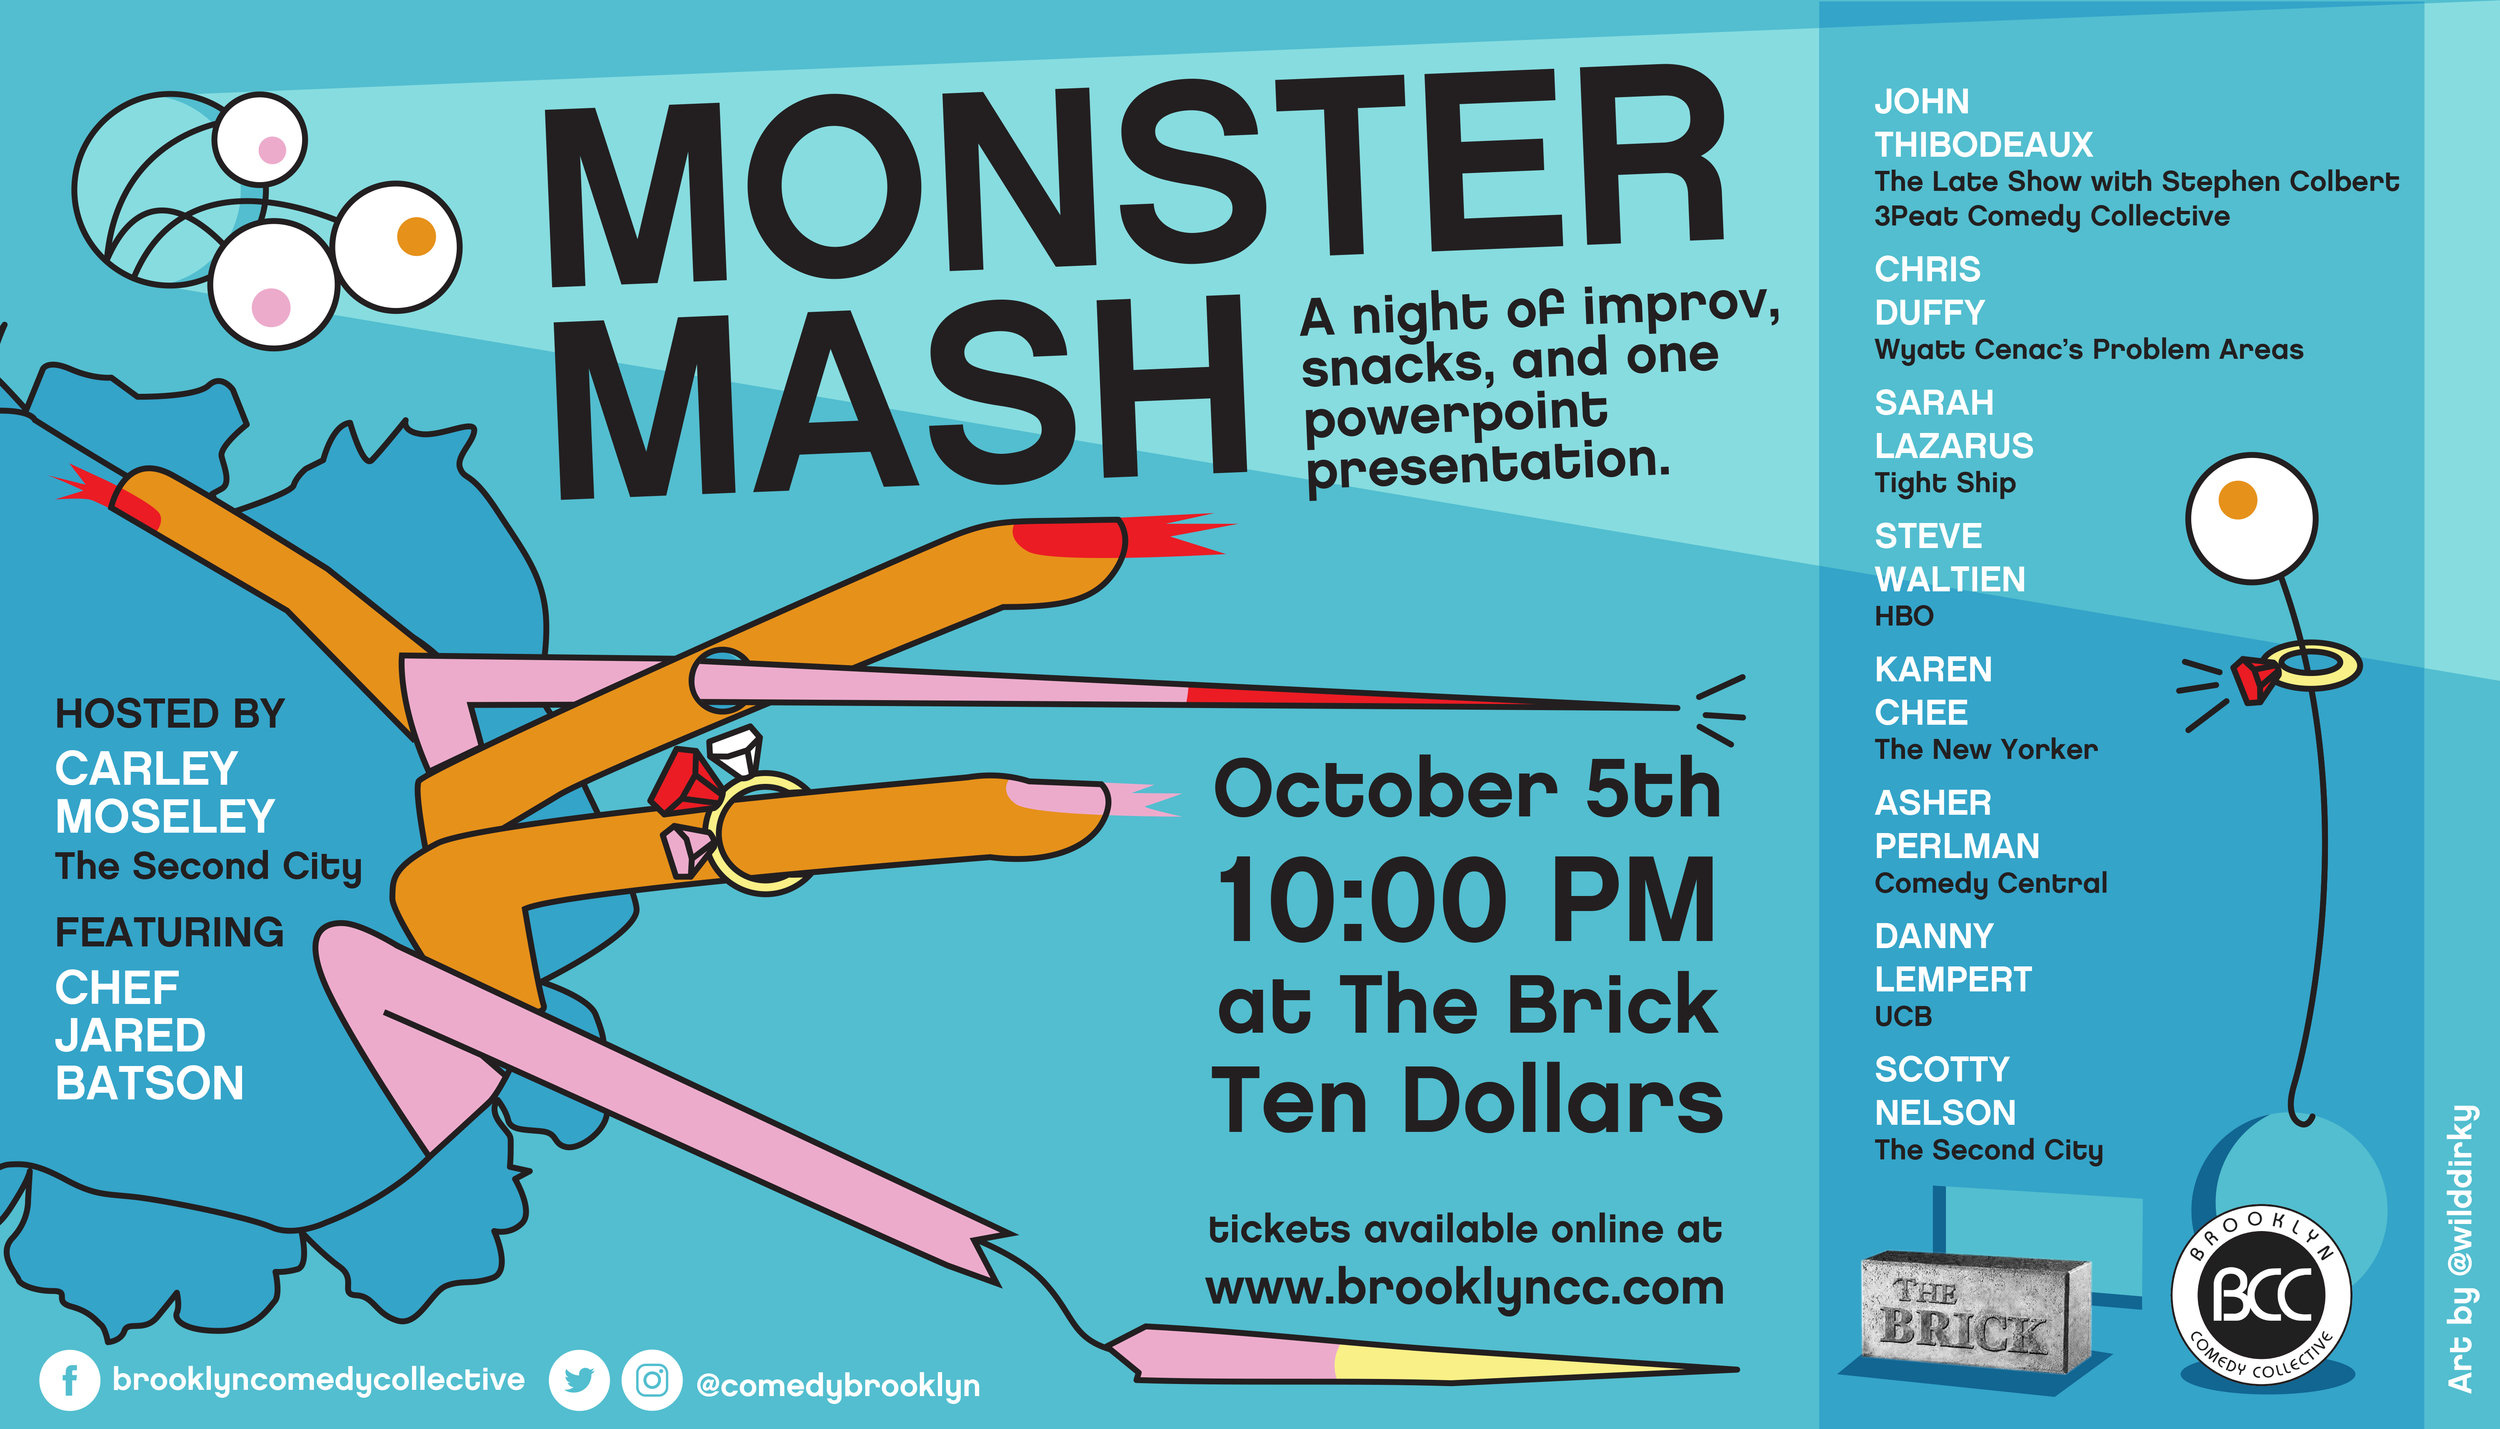 Monster Mash Oct. 2018 - Poster v2.jpg